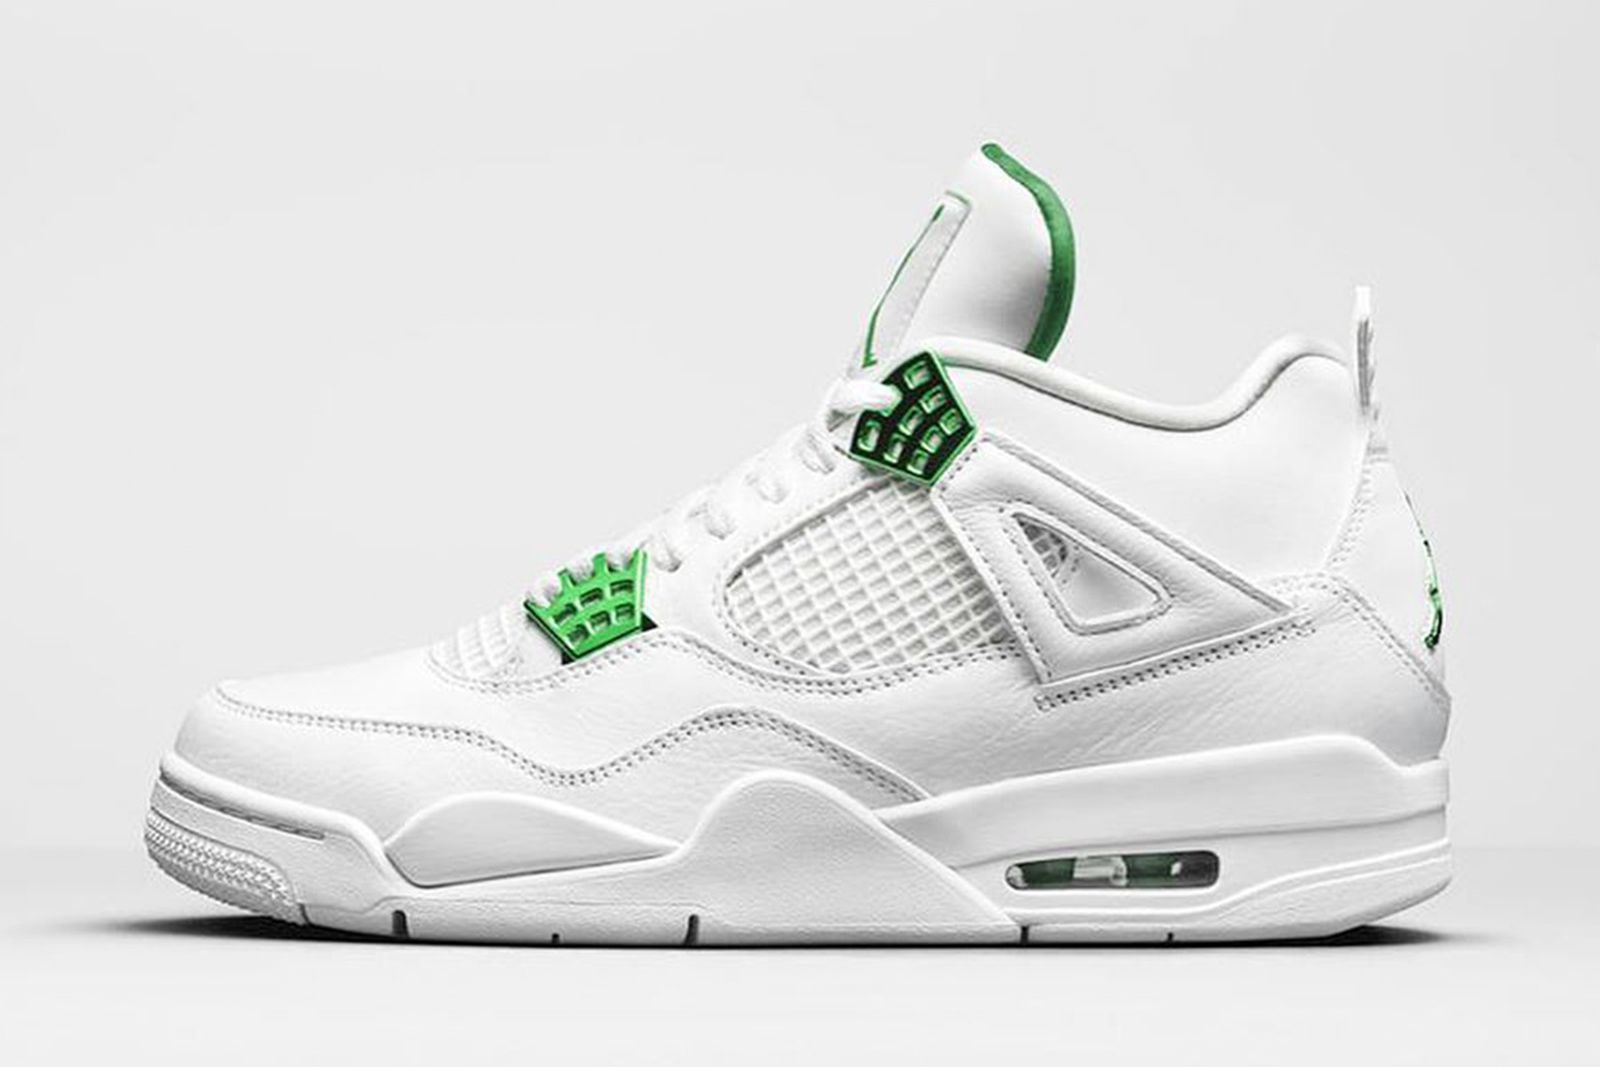 nike air jordan 4 metallic green product shot